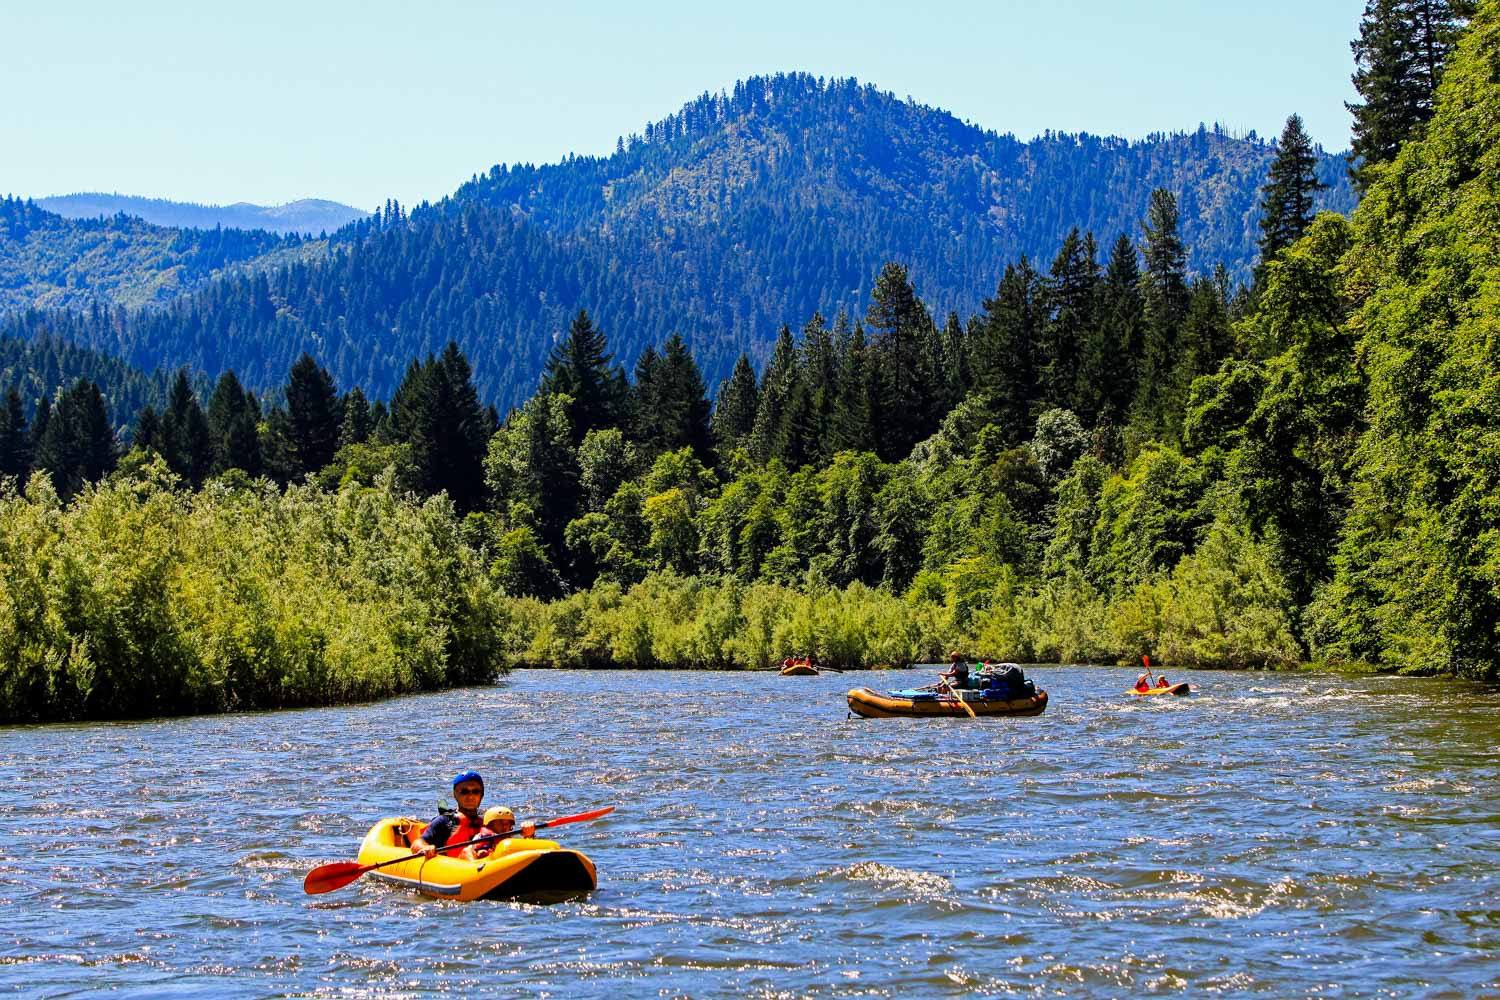 klamath river cougar women River fishing the klamath river got a little bit of extra water this week, and anglers have seen an uptick in the salmon bite for a few days afterwards  more cougar sightings reported, caught.